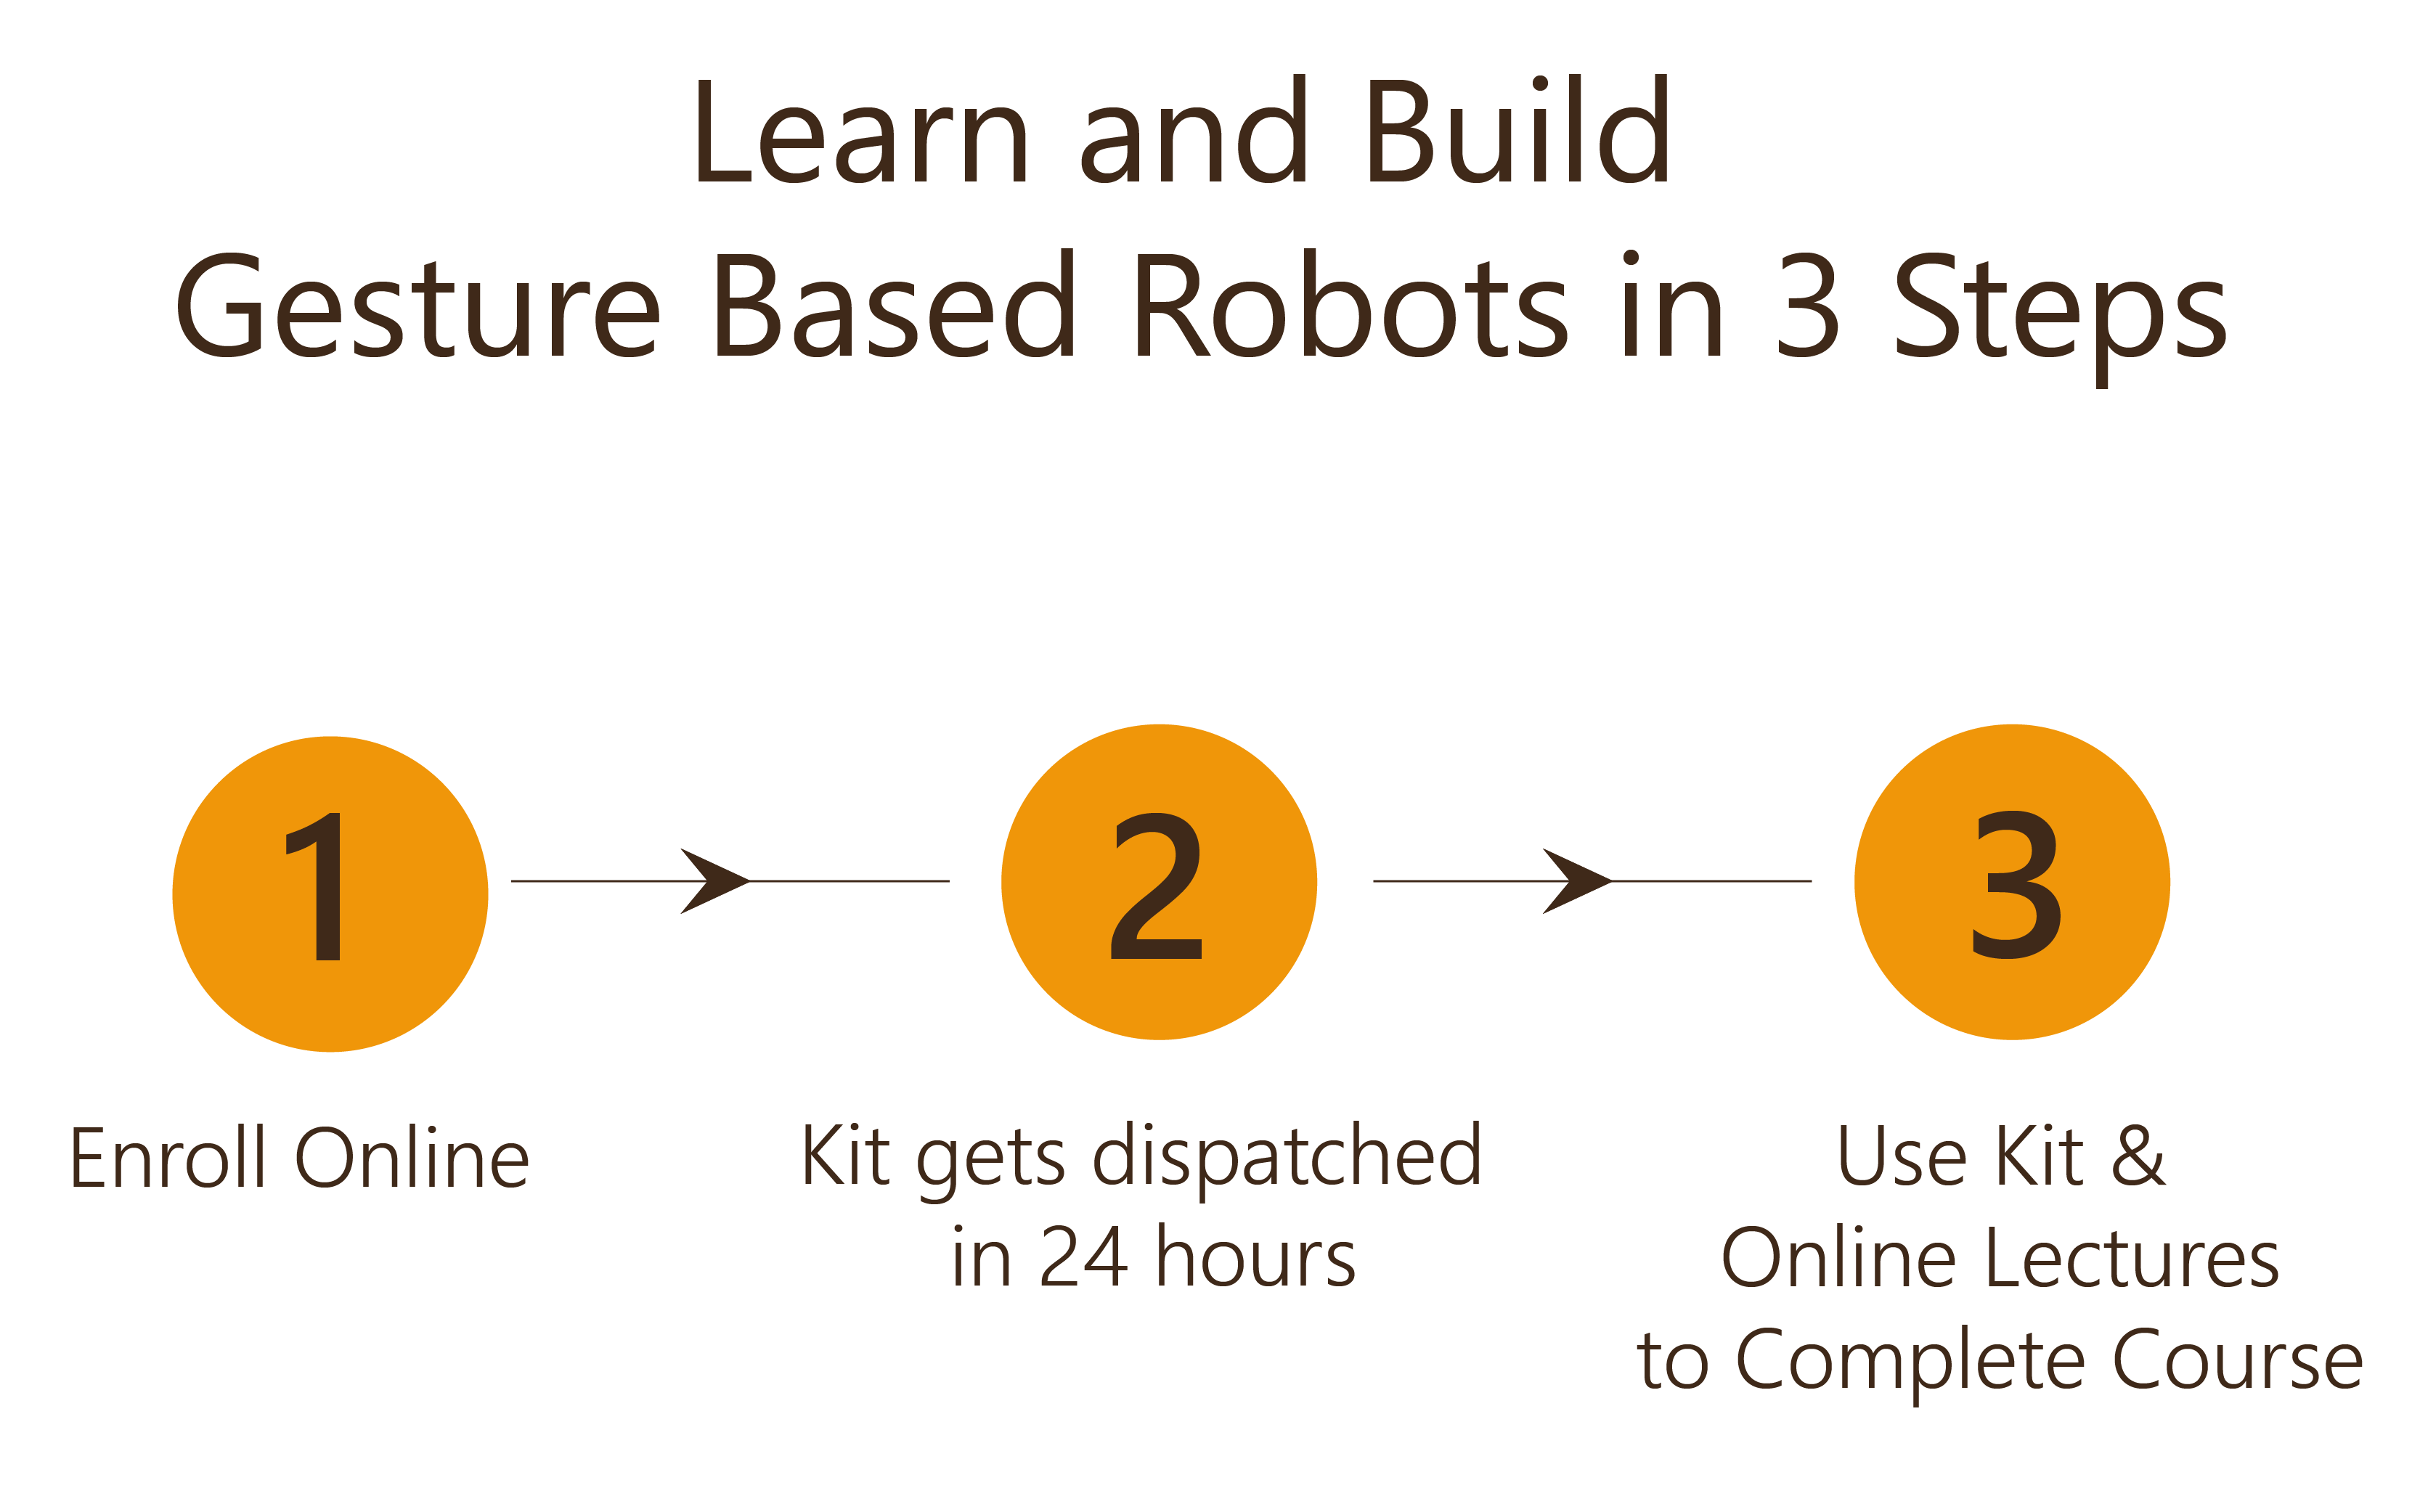 Learn and Build Gesture Robot in 3 Steps